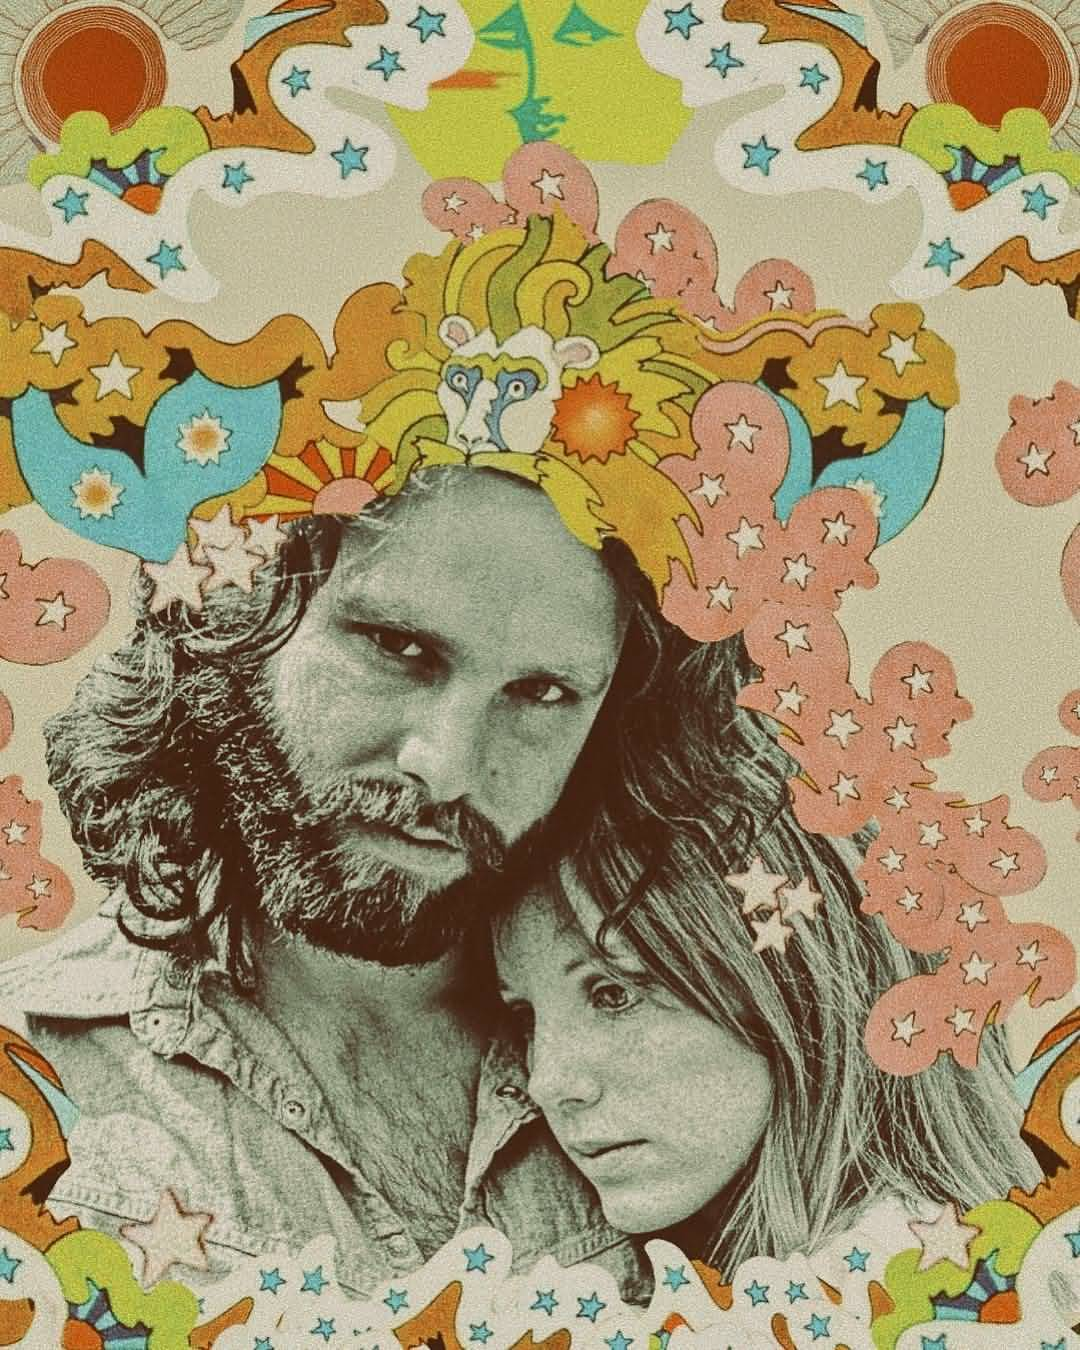 Some Rare Pictures Of Jim Morrison with Girlfriend Pamela Courson 22